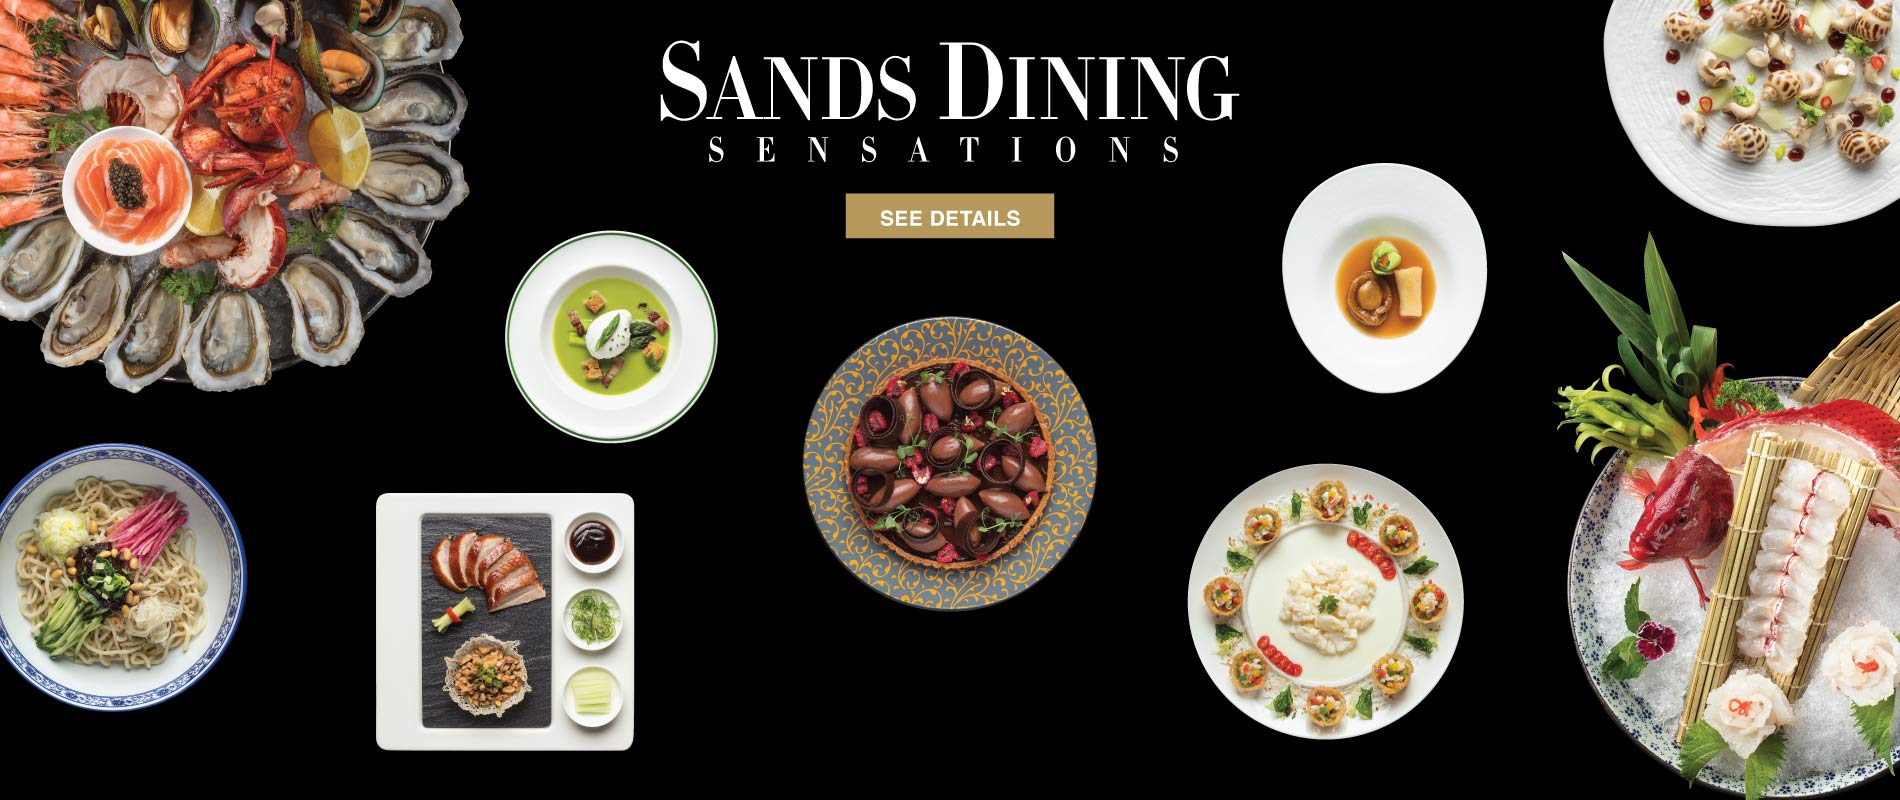 Sands Dining Sensations